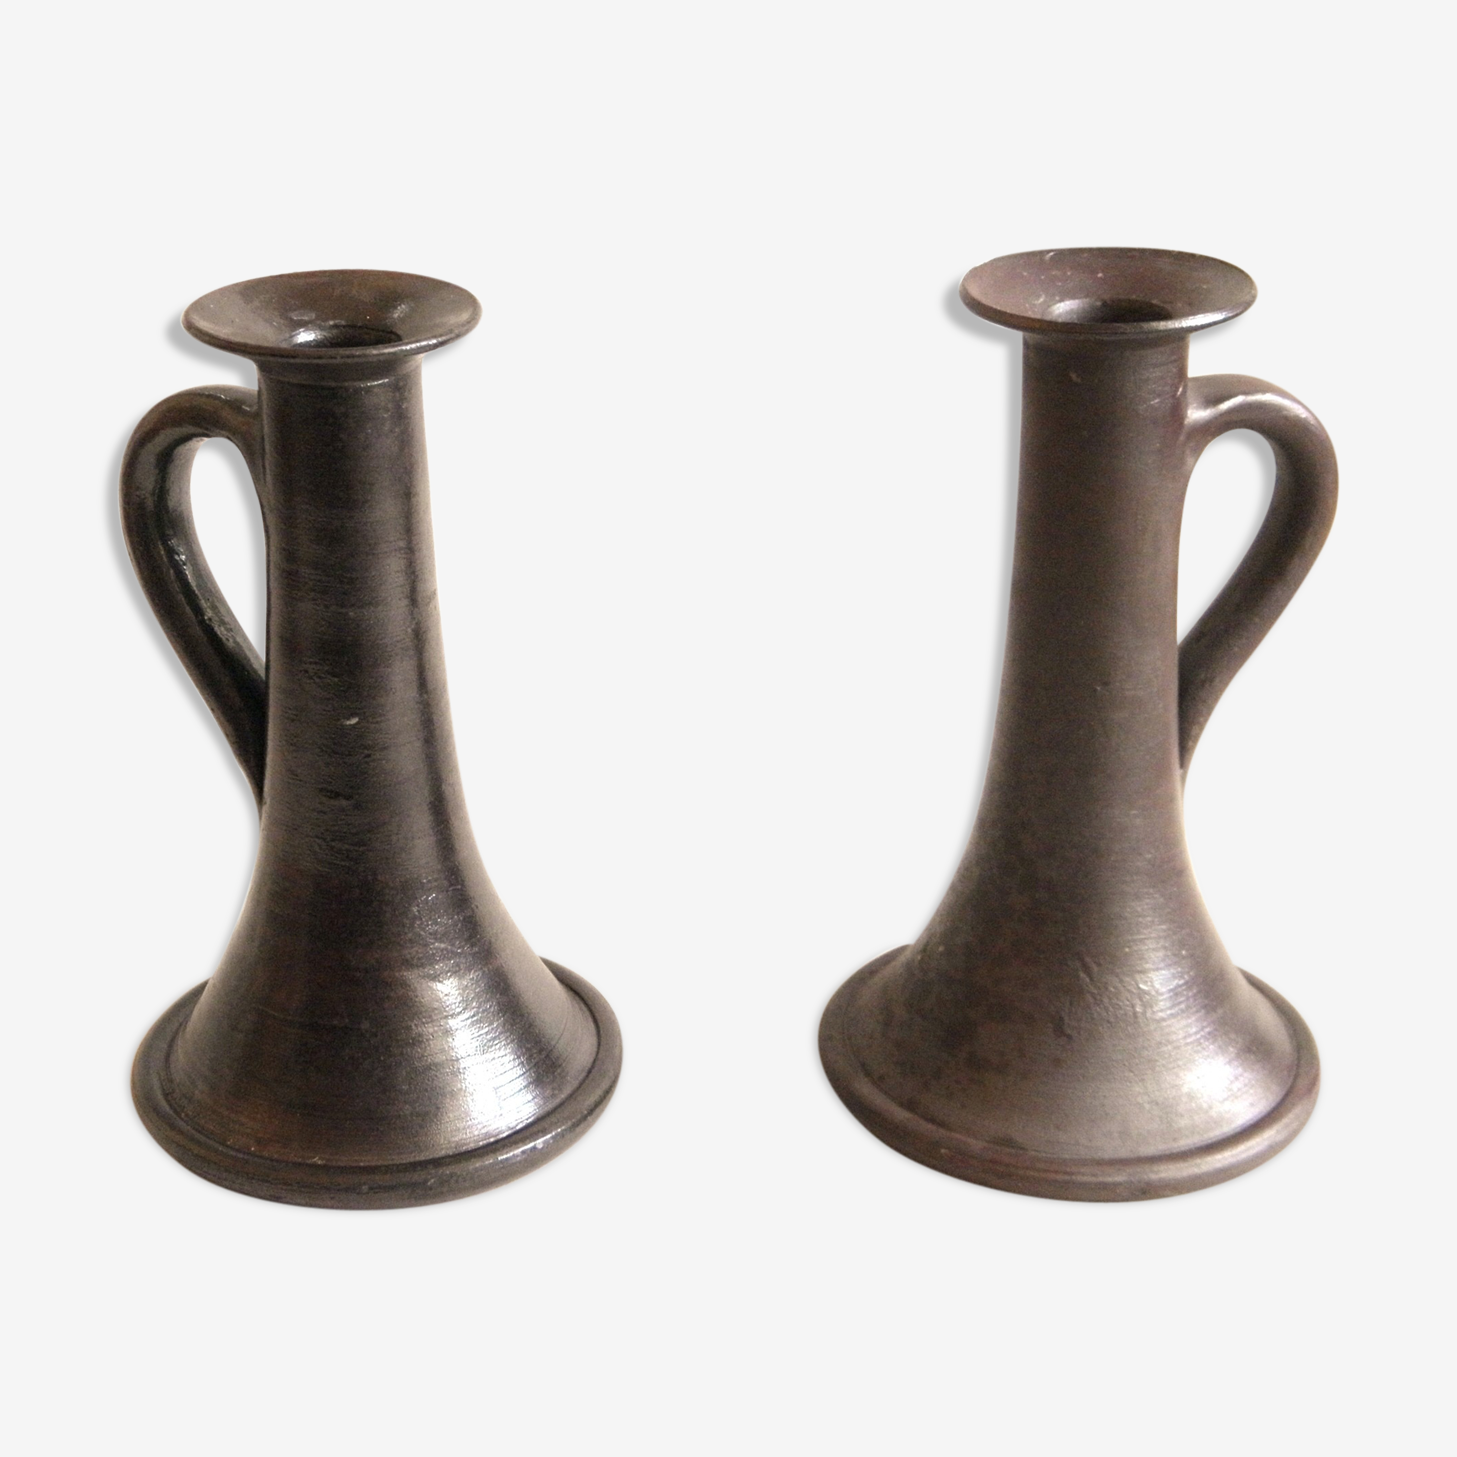 Pair of candlesticks in glazed stoneware